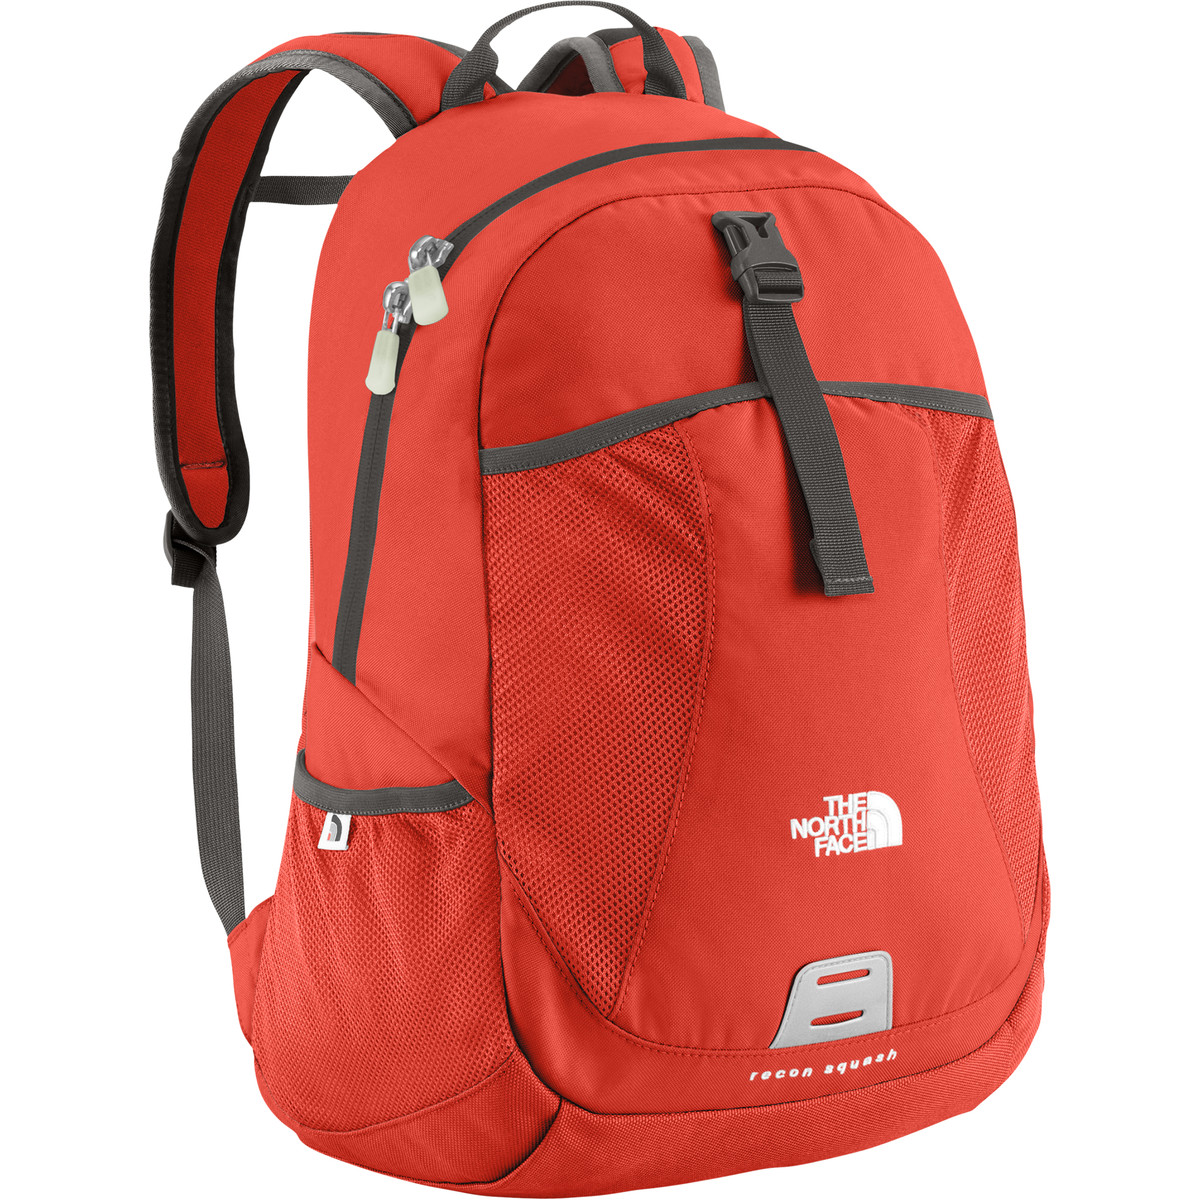 The North Face Recon Squash